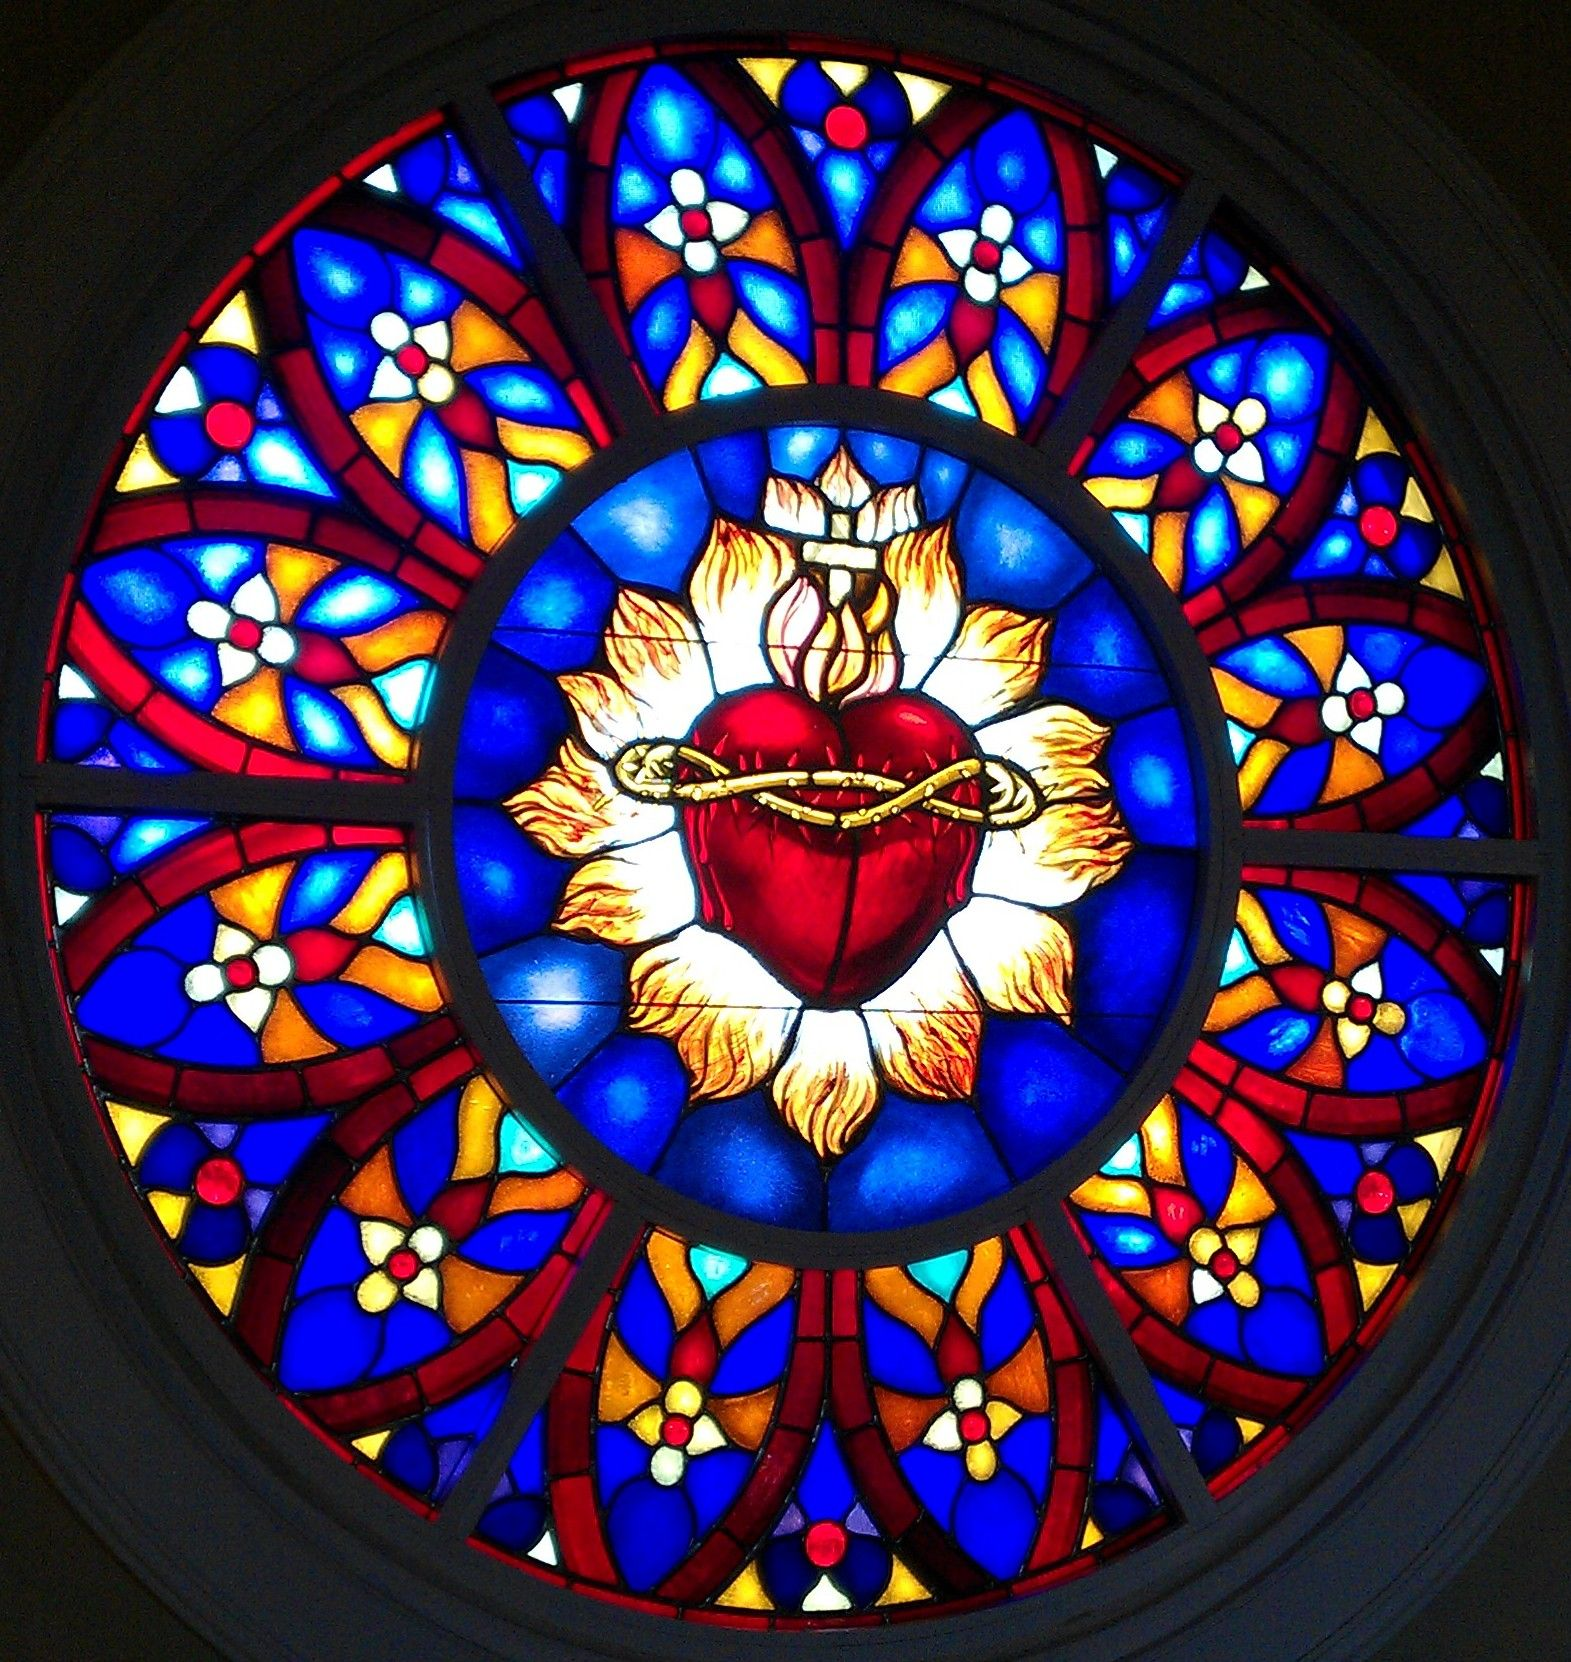 Heart Of Jesus Church Center Window The Catholic Values Highly Institutions